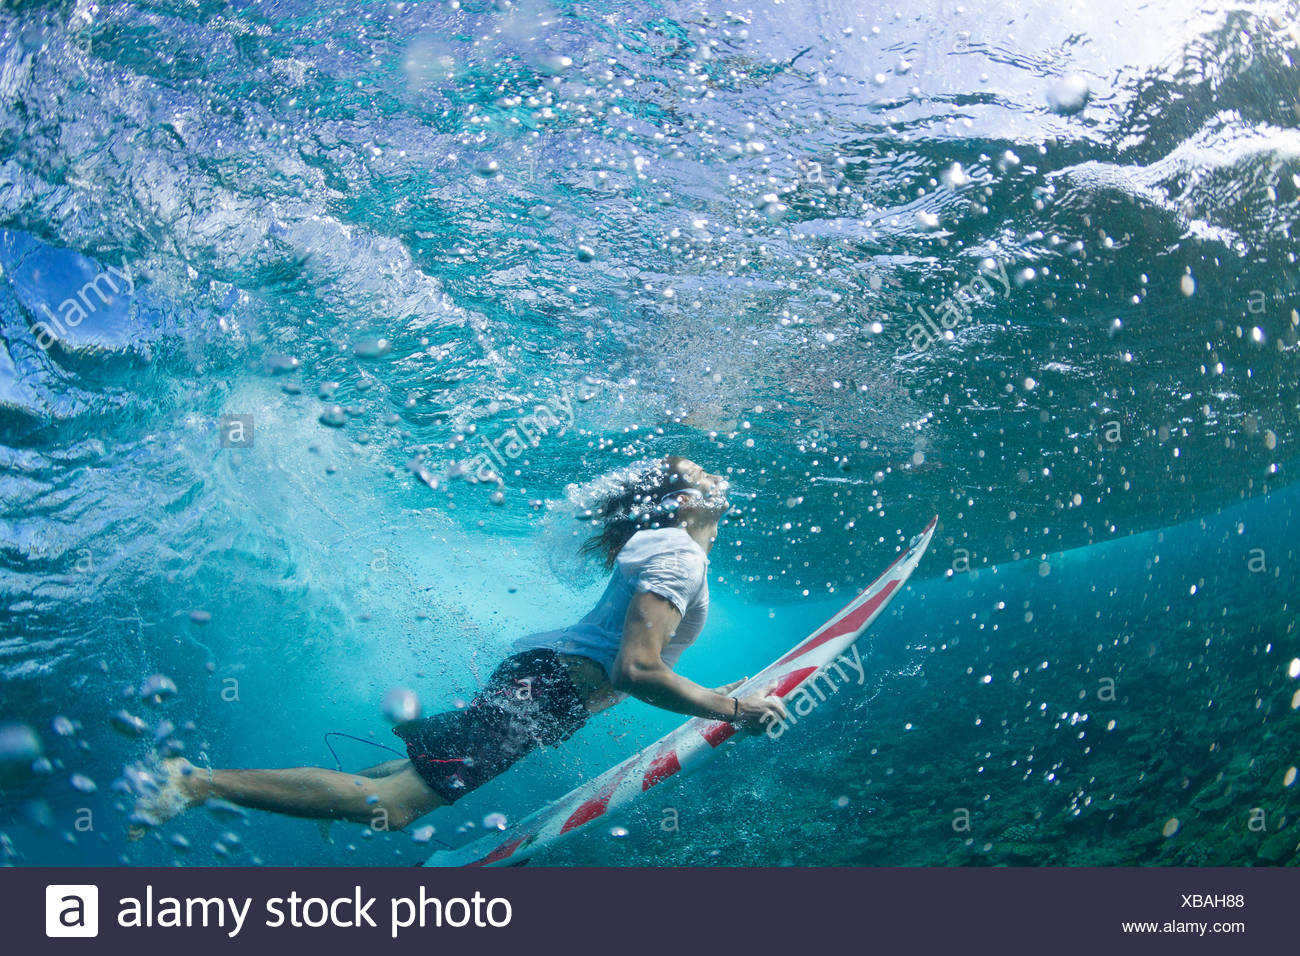 Underwater view of a surfer duck diving under a wave - Stock Image